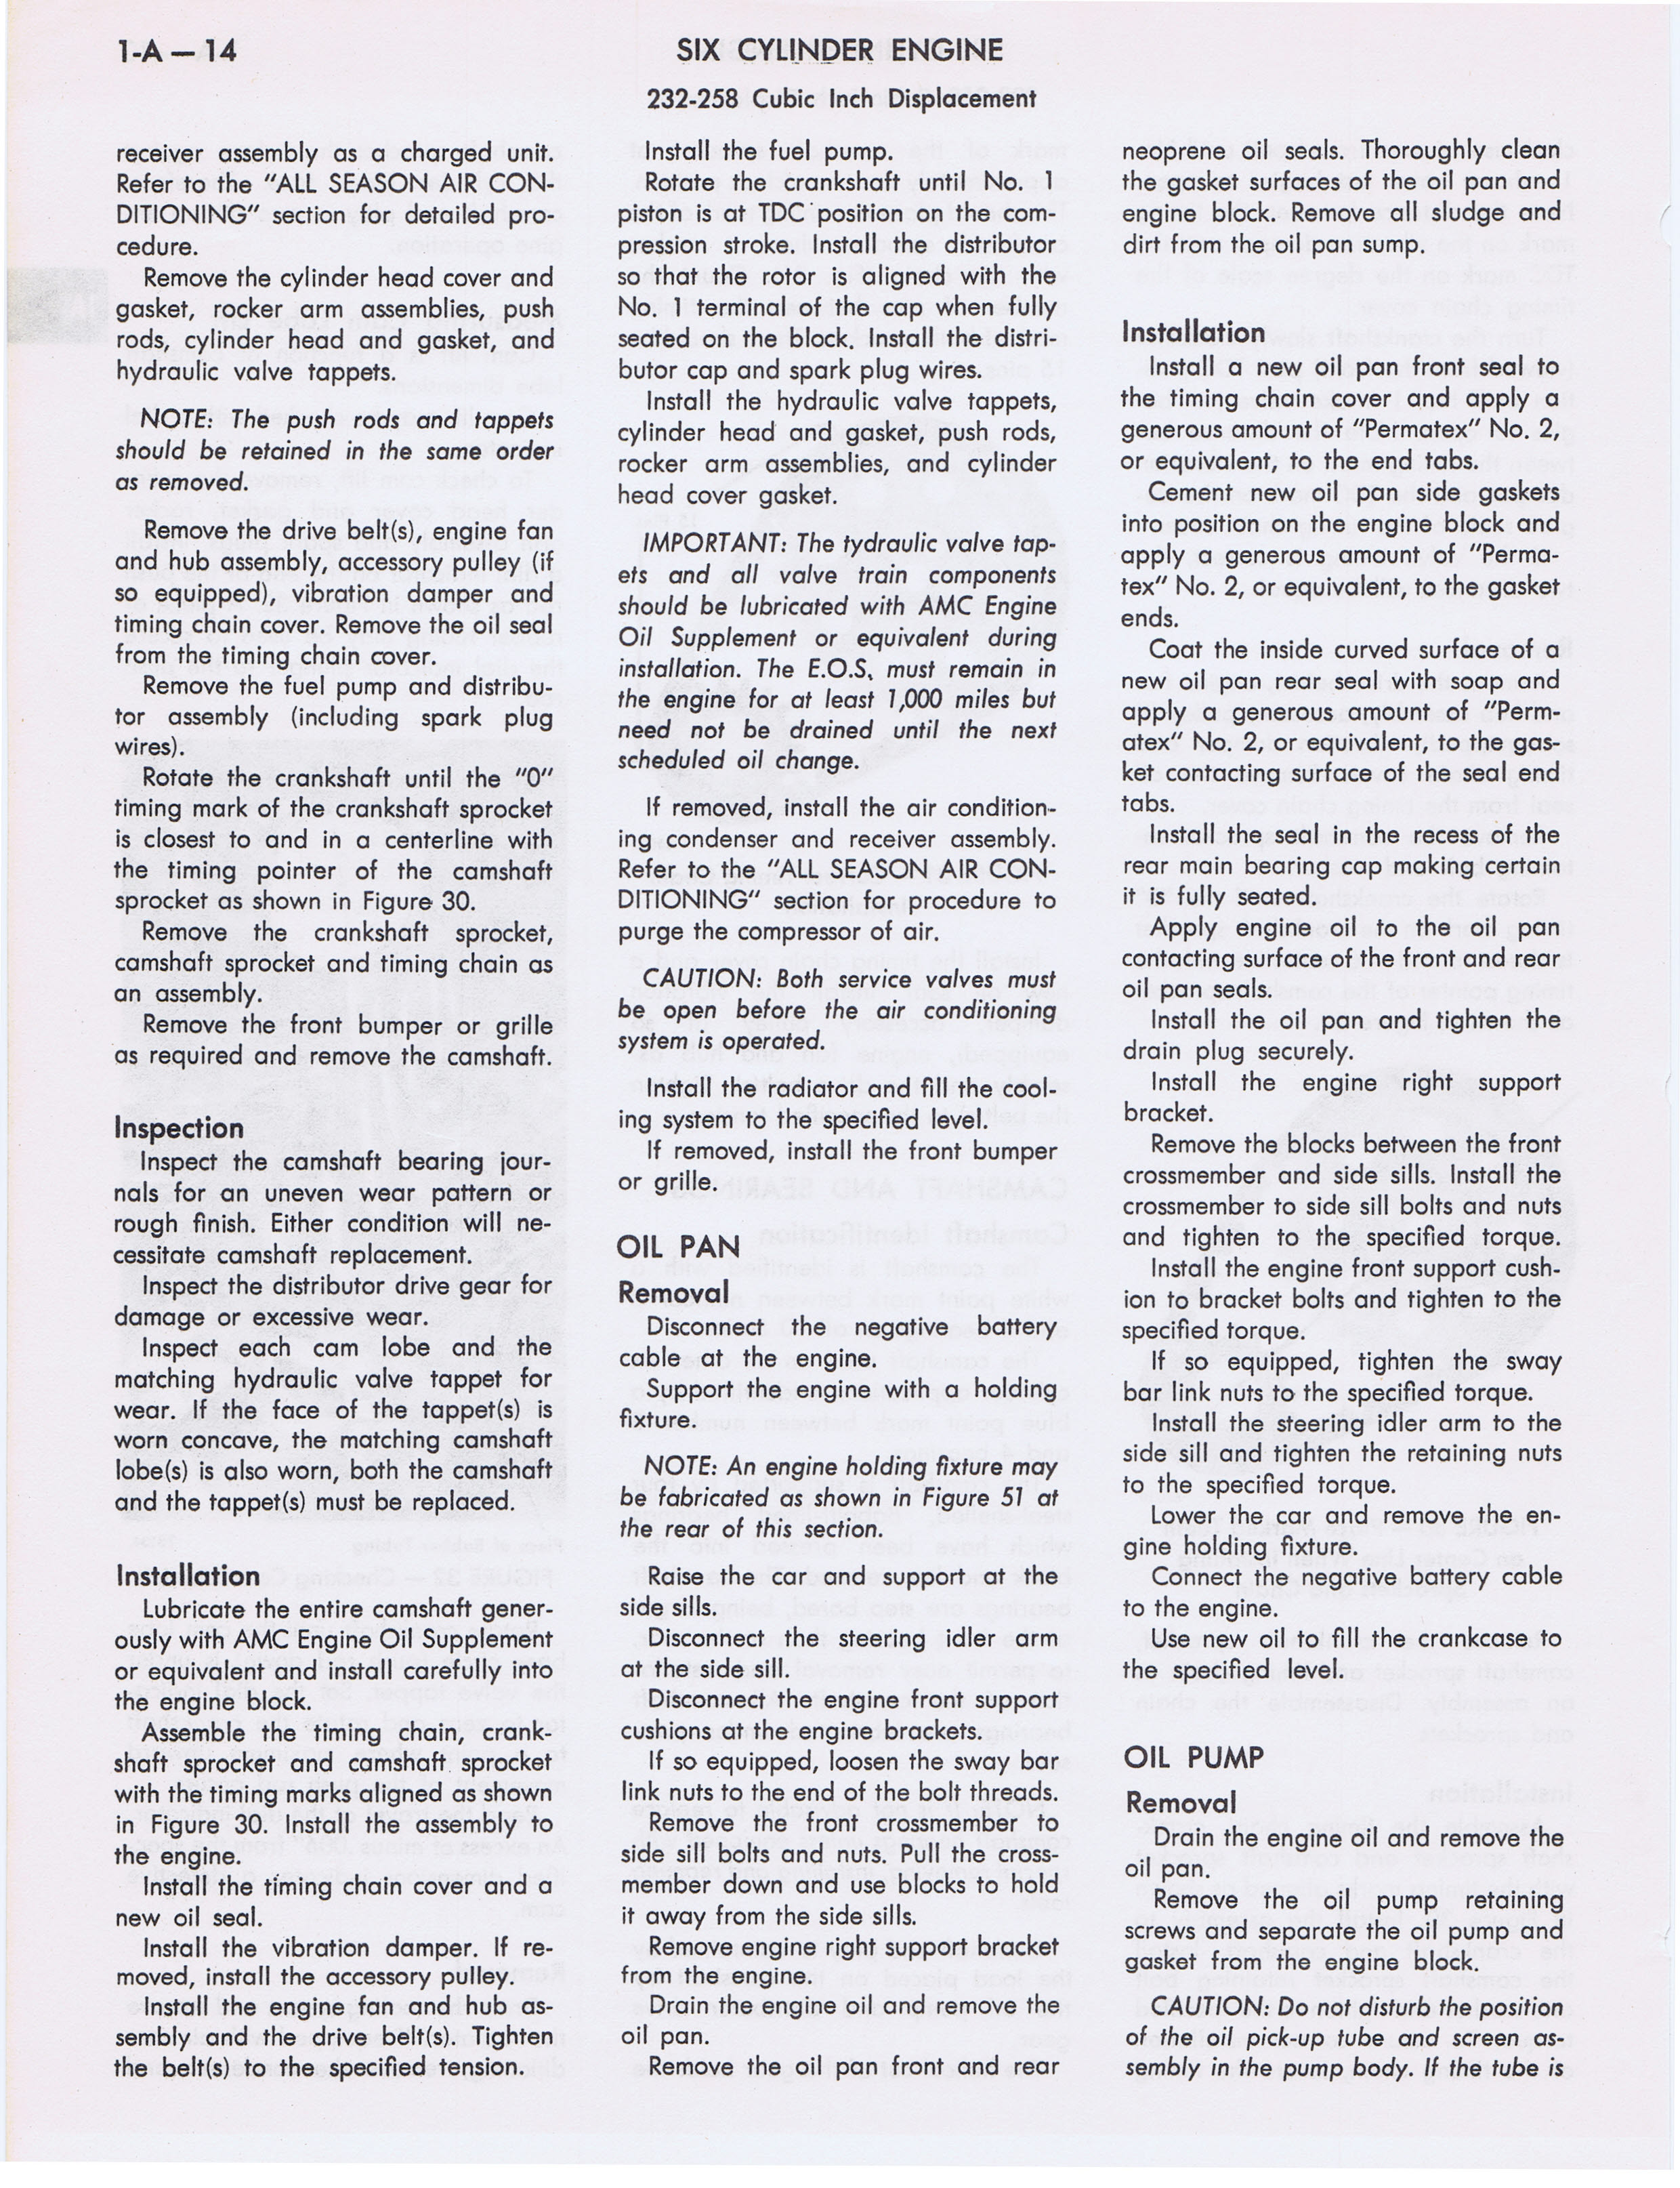 1973 AMC Technical Service Manual page 36 of 487